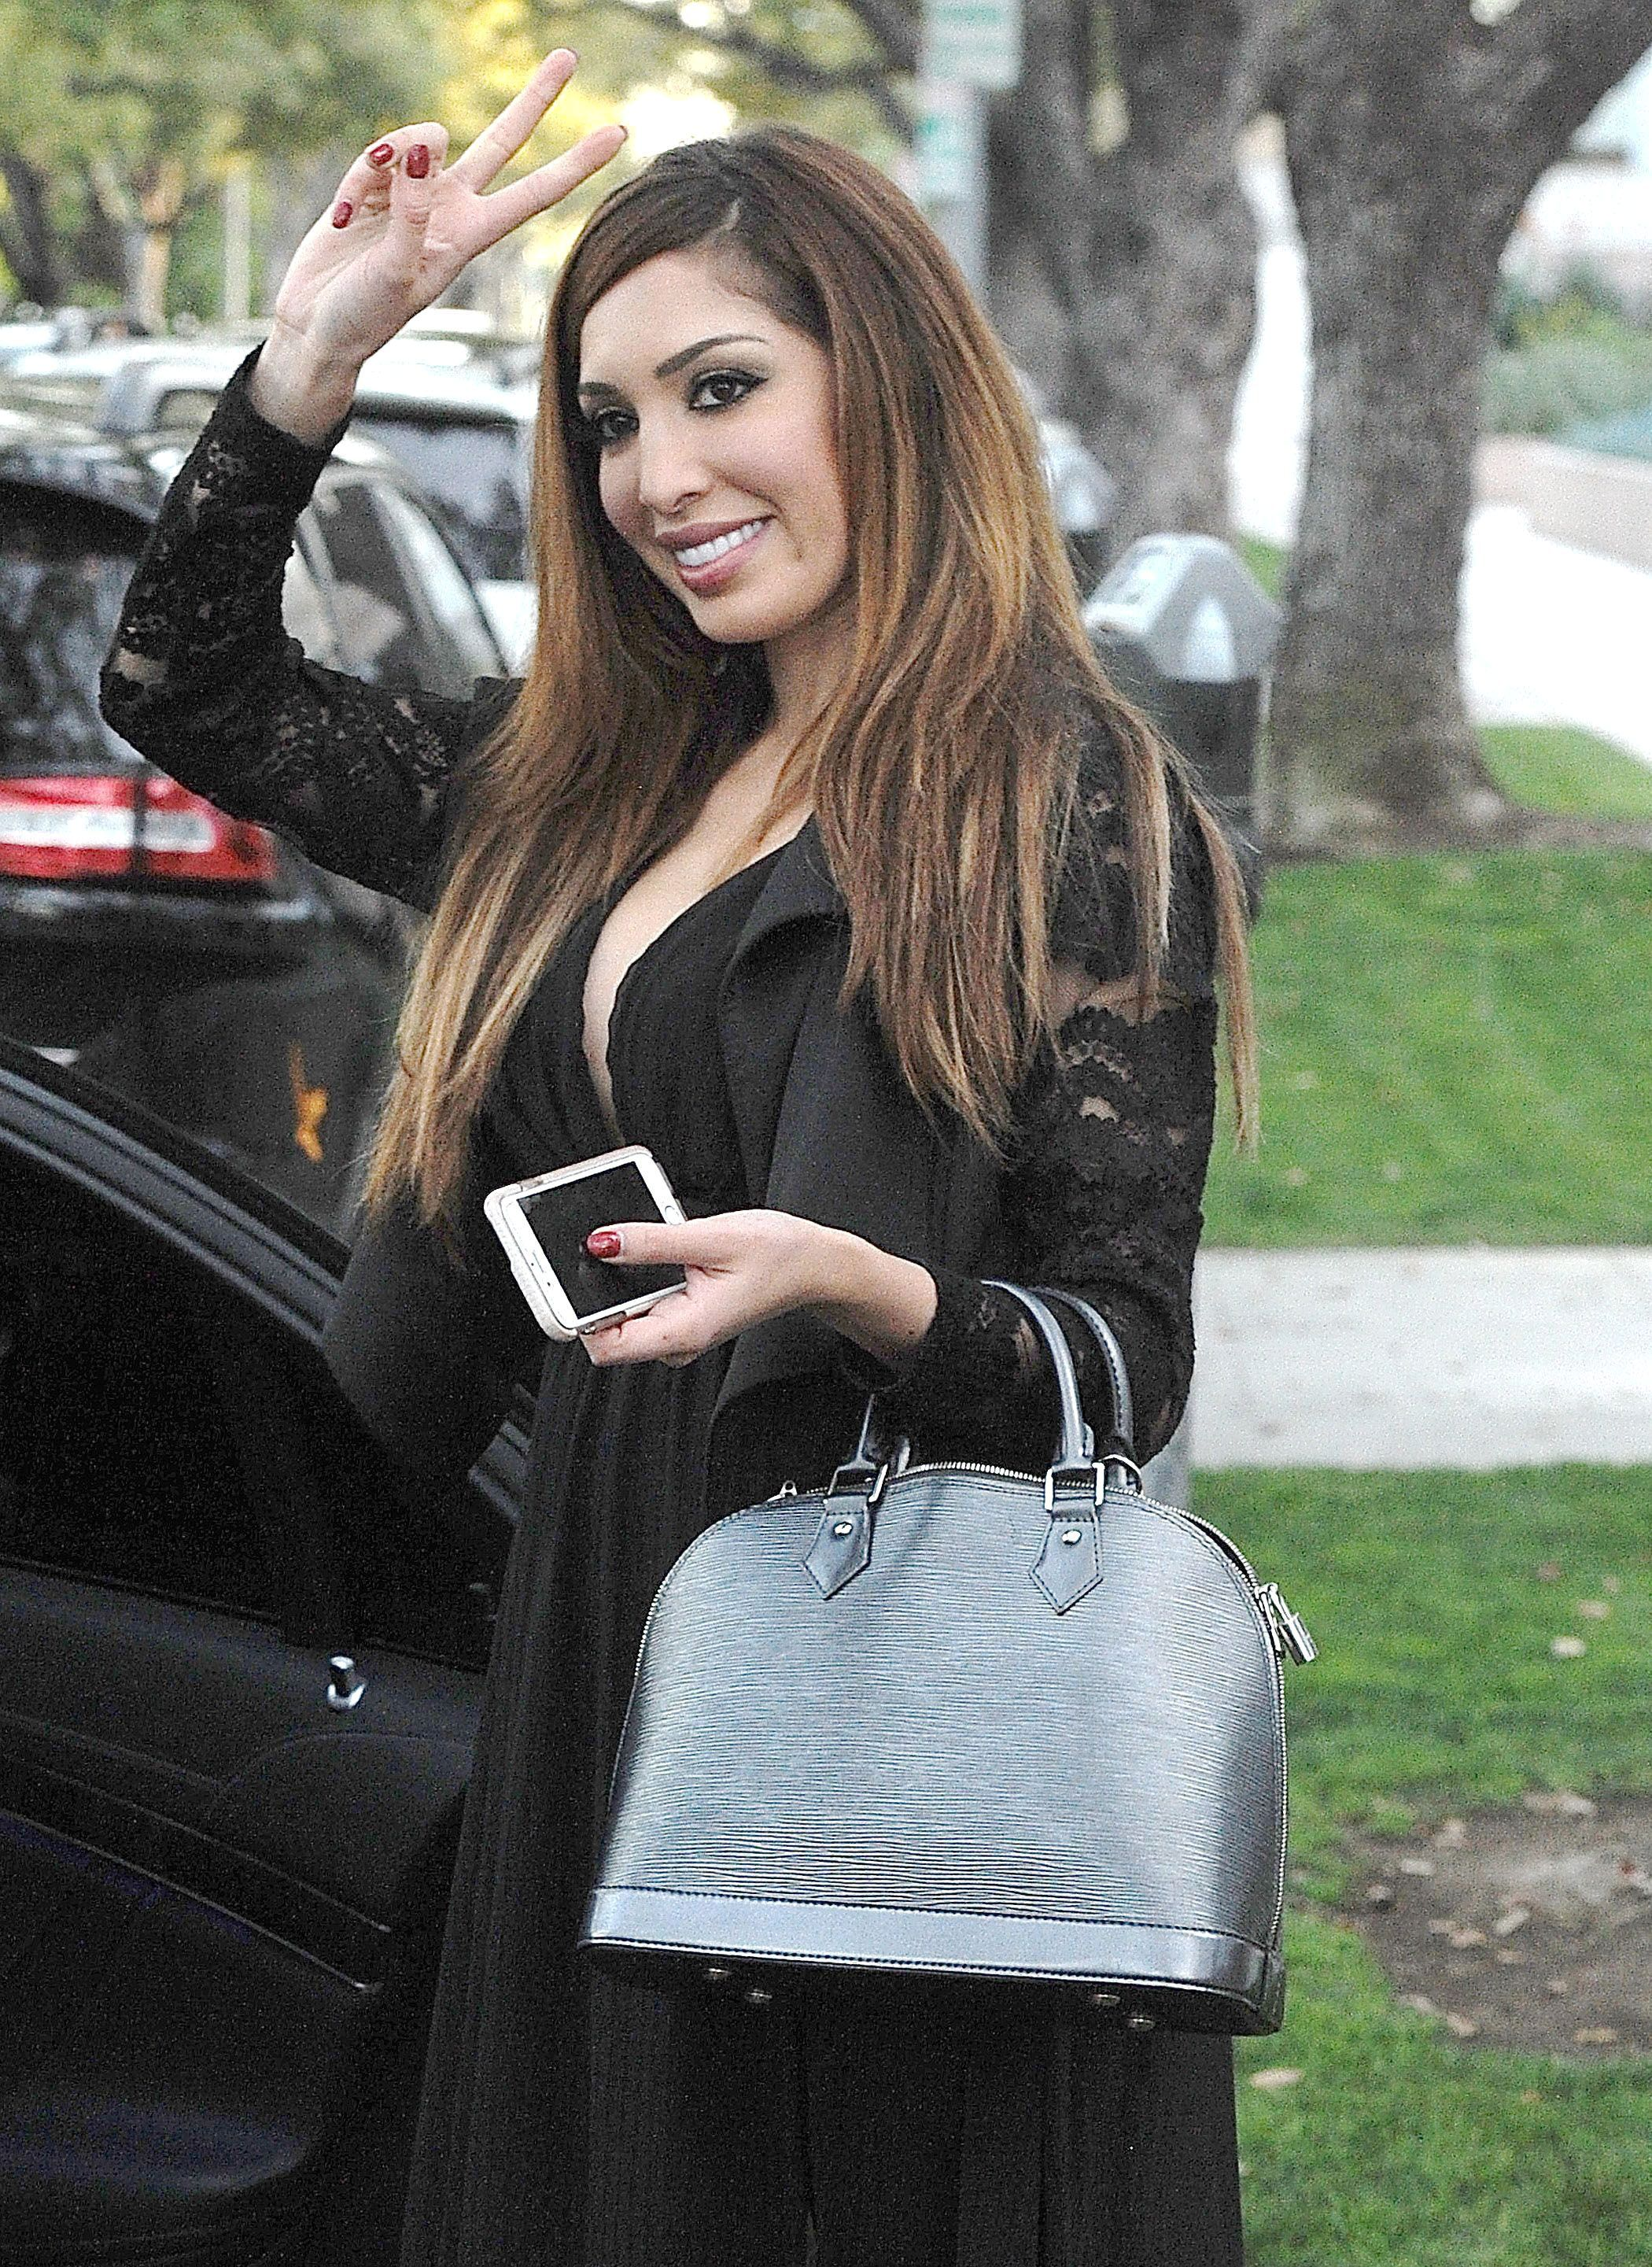 Teen Mom: Fans Want Farrah Abraham Locked up After She